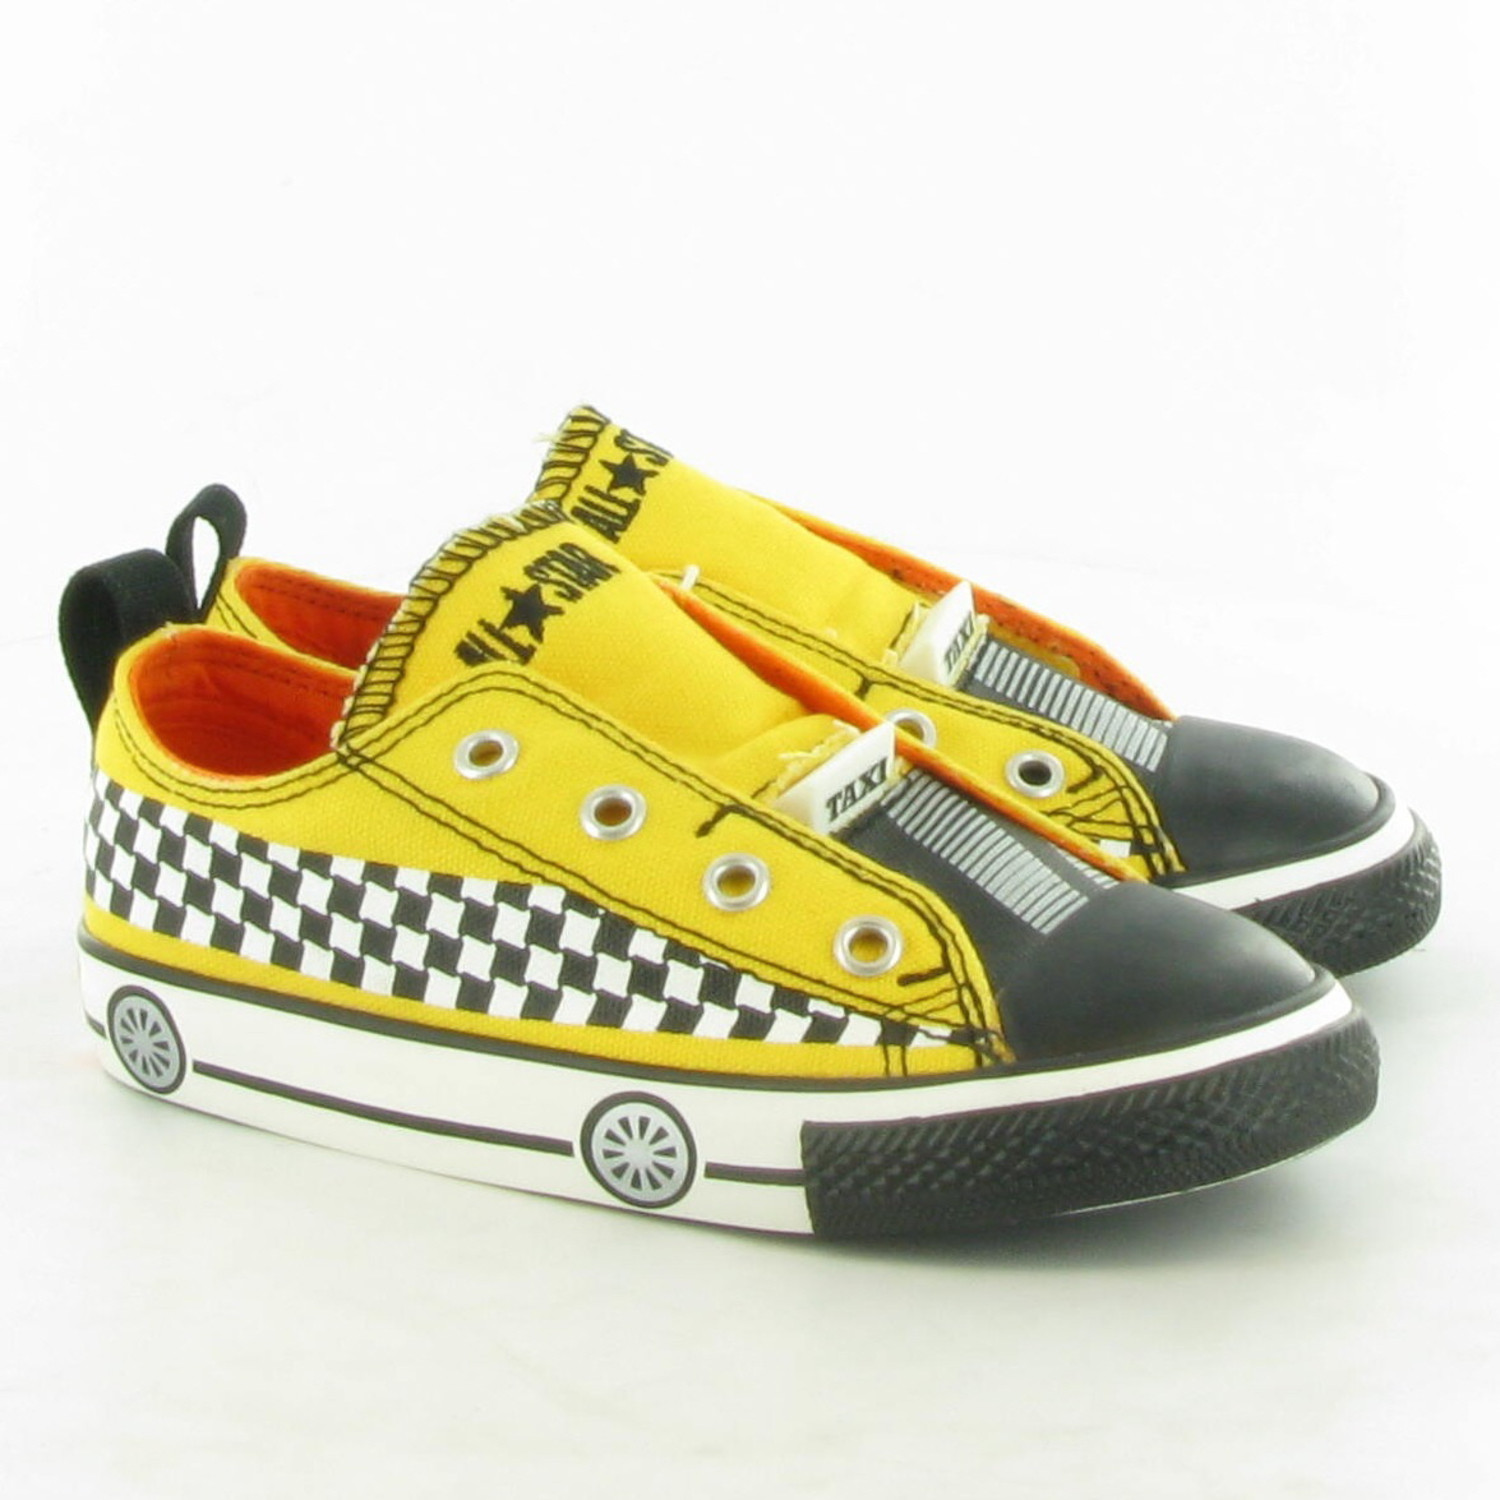 Converse Chuck Taylor All Star Taxi Cab Shoes